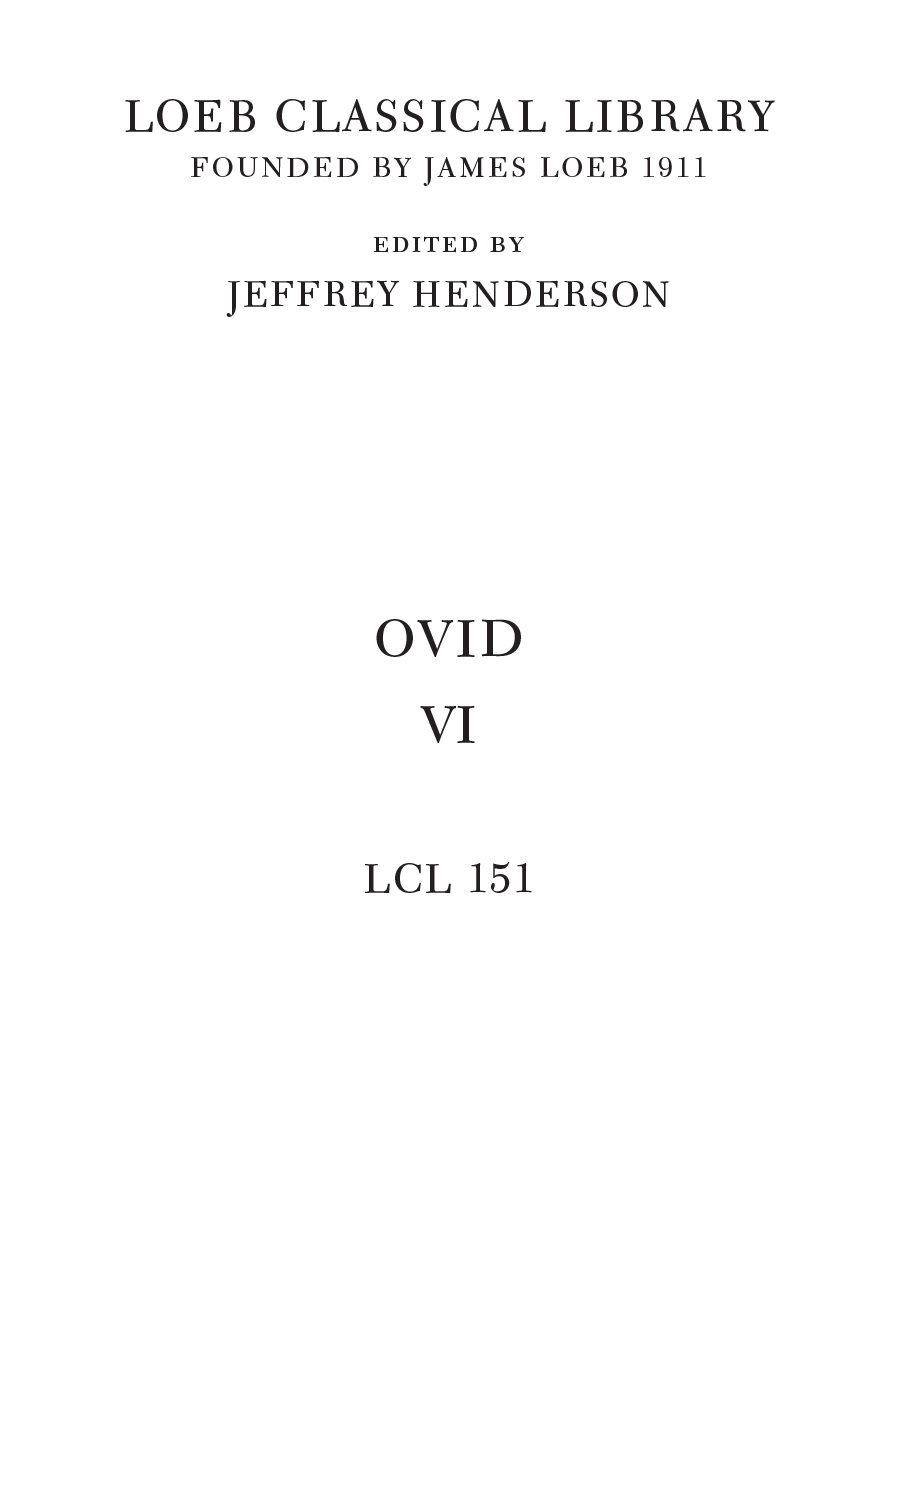 LOEB CLASSICAL LIBRARY FOUNDED BY JAMES LOEB 1911 edited by JEFFREY HENDERSON OVID VI LCL 151